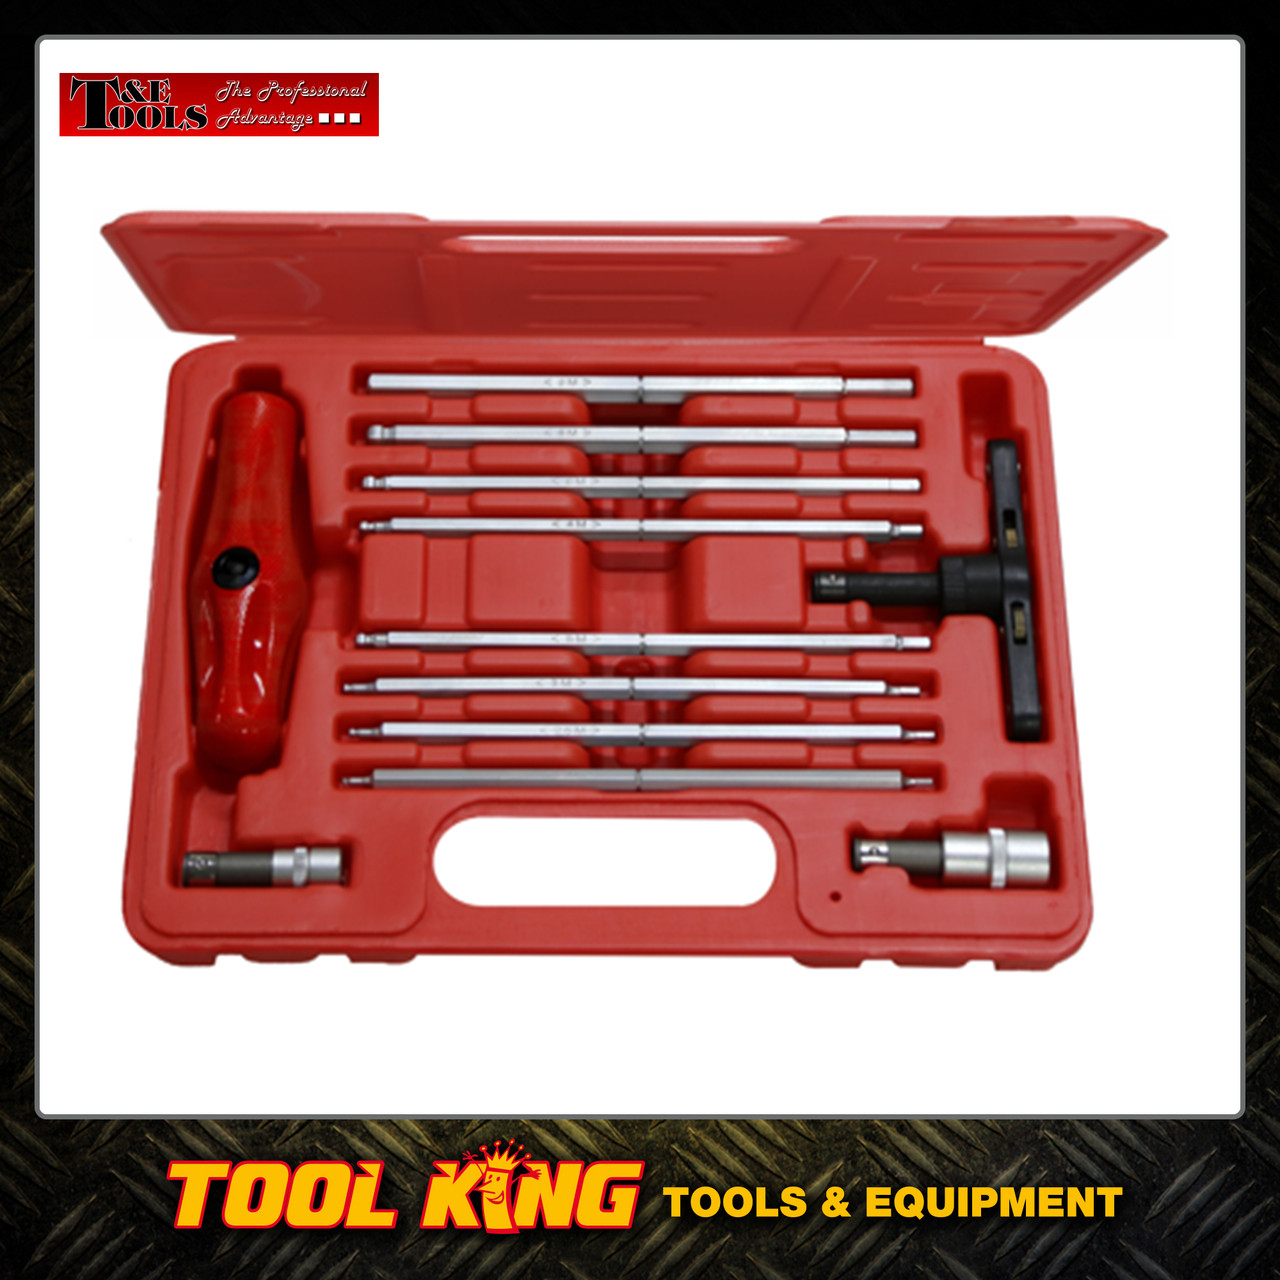 12pc T handle In-Hex key set SAET&E Tools